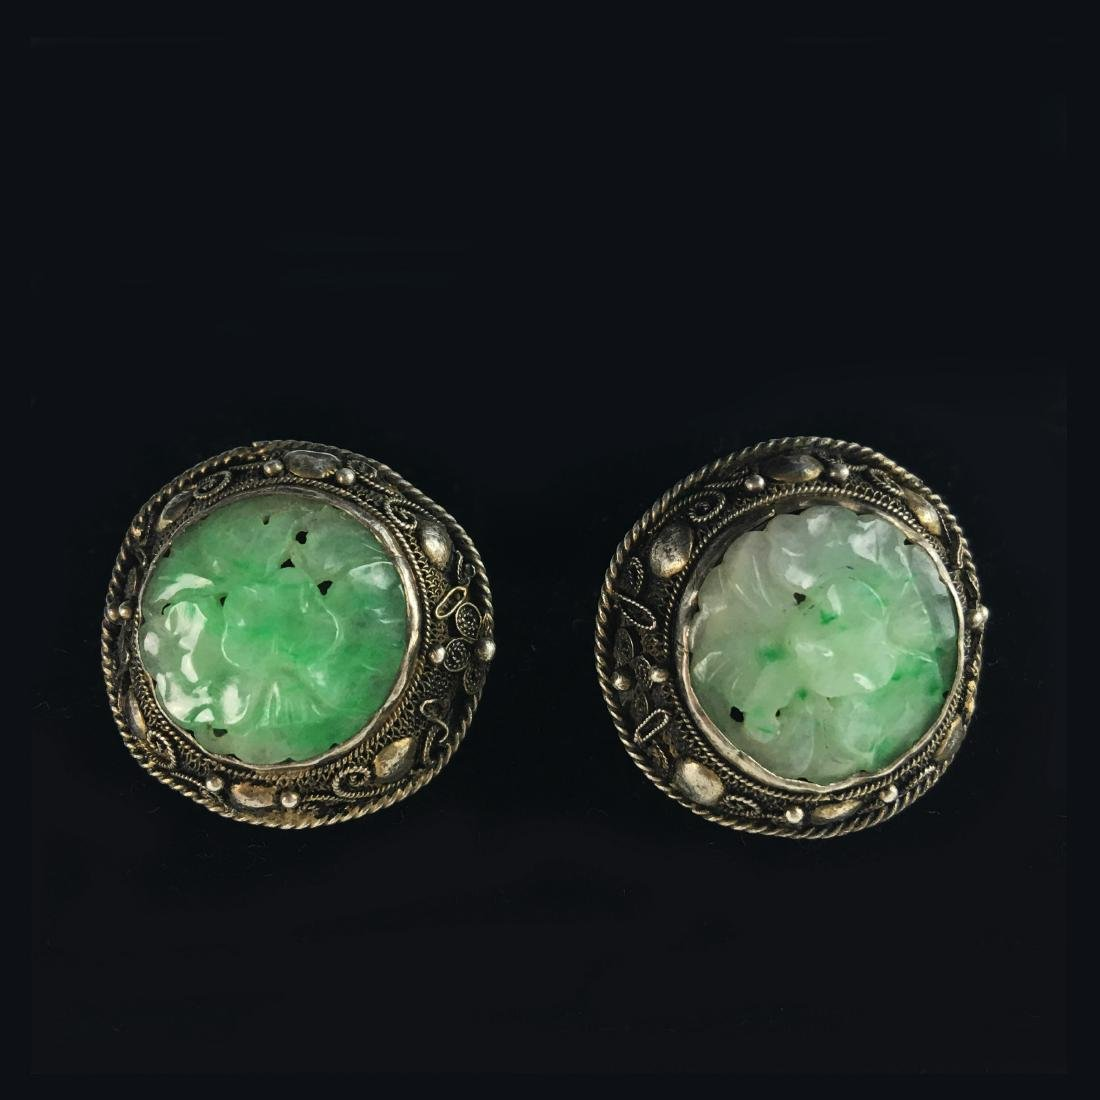 A Pair of Chinese Antique Jadeite Ear Ring Silver